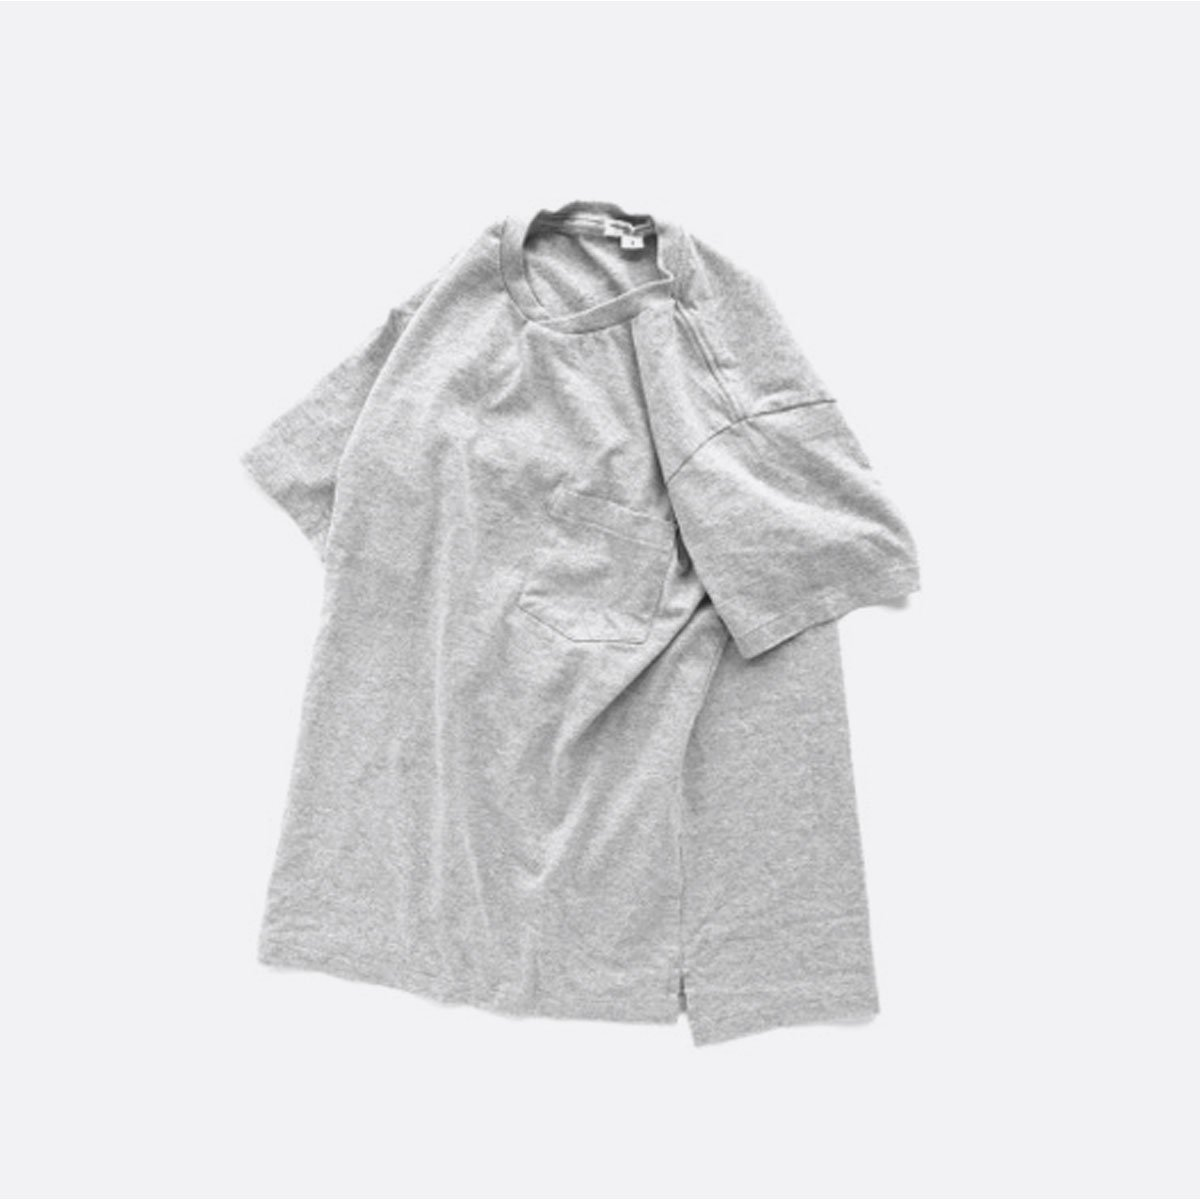 Engineered Garments  Workaday C/N Pocket Tee  (GREY)2